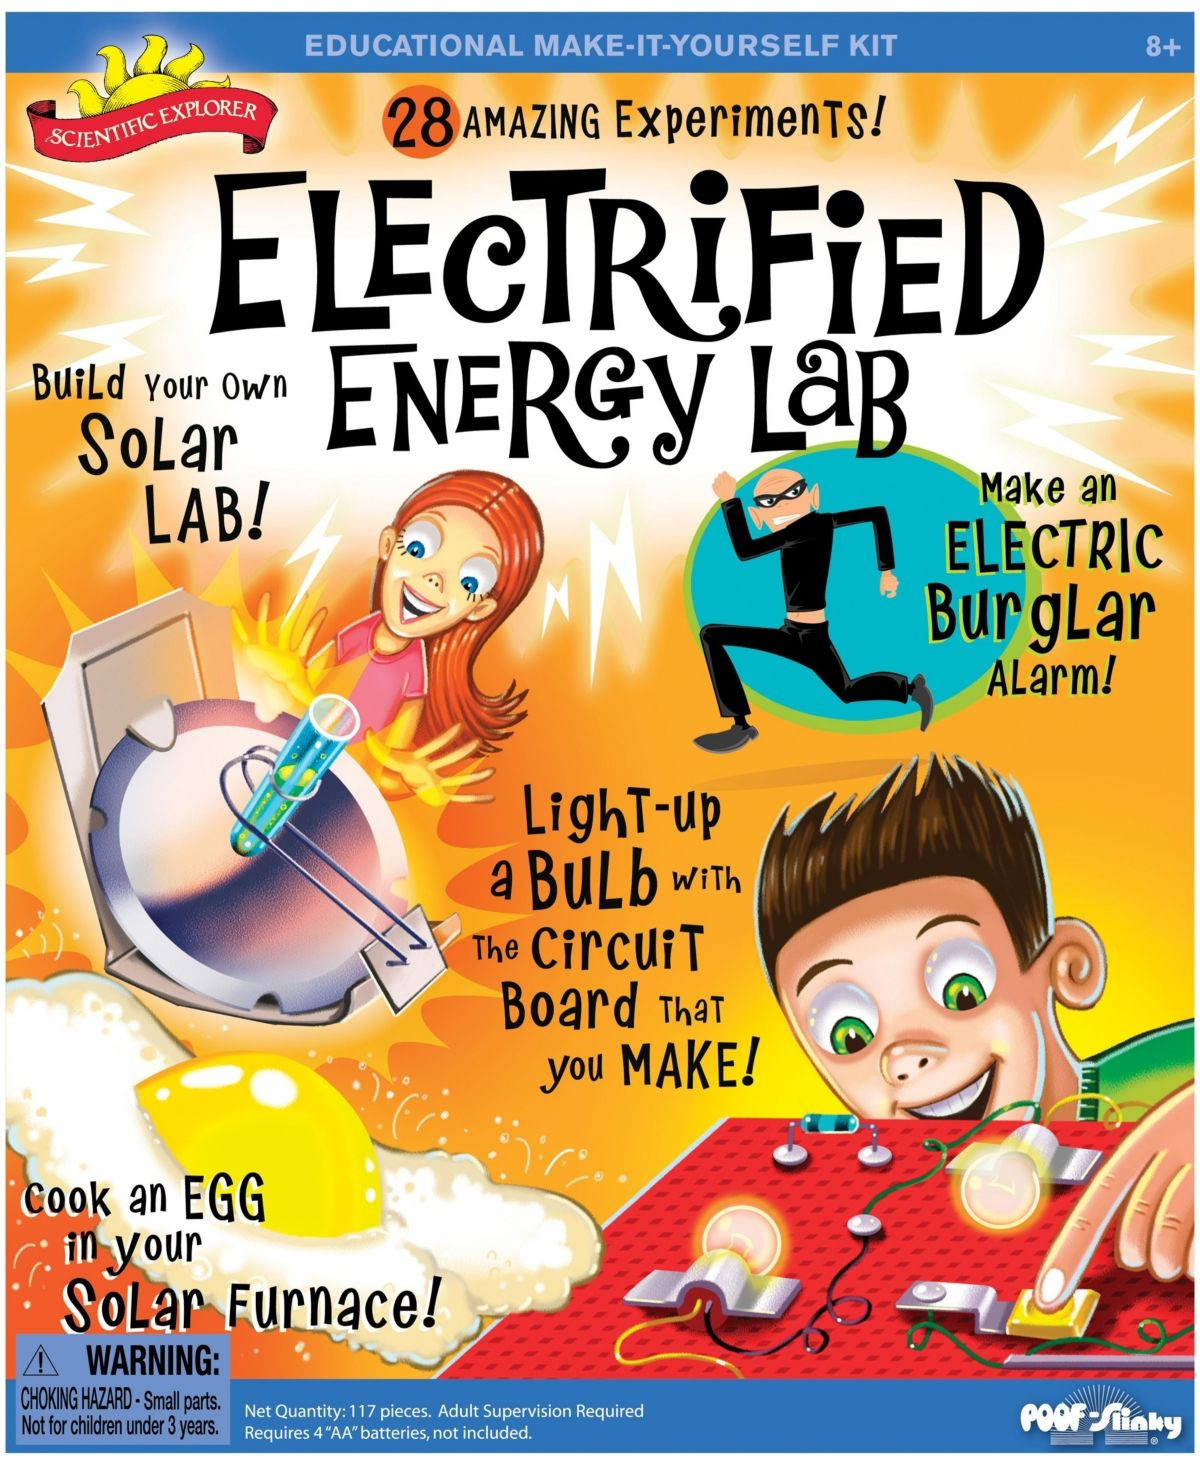 Electrified Energy Lab Science kits, Energy, Experiments